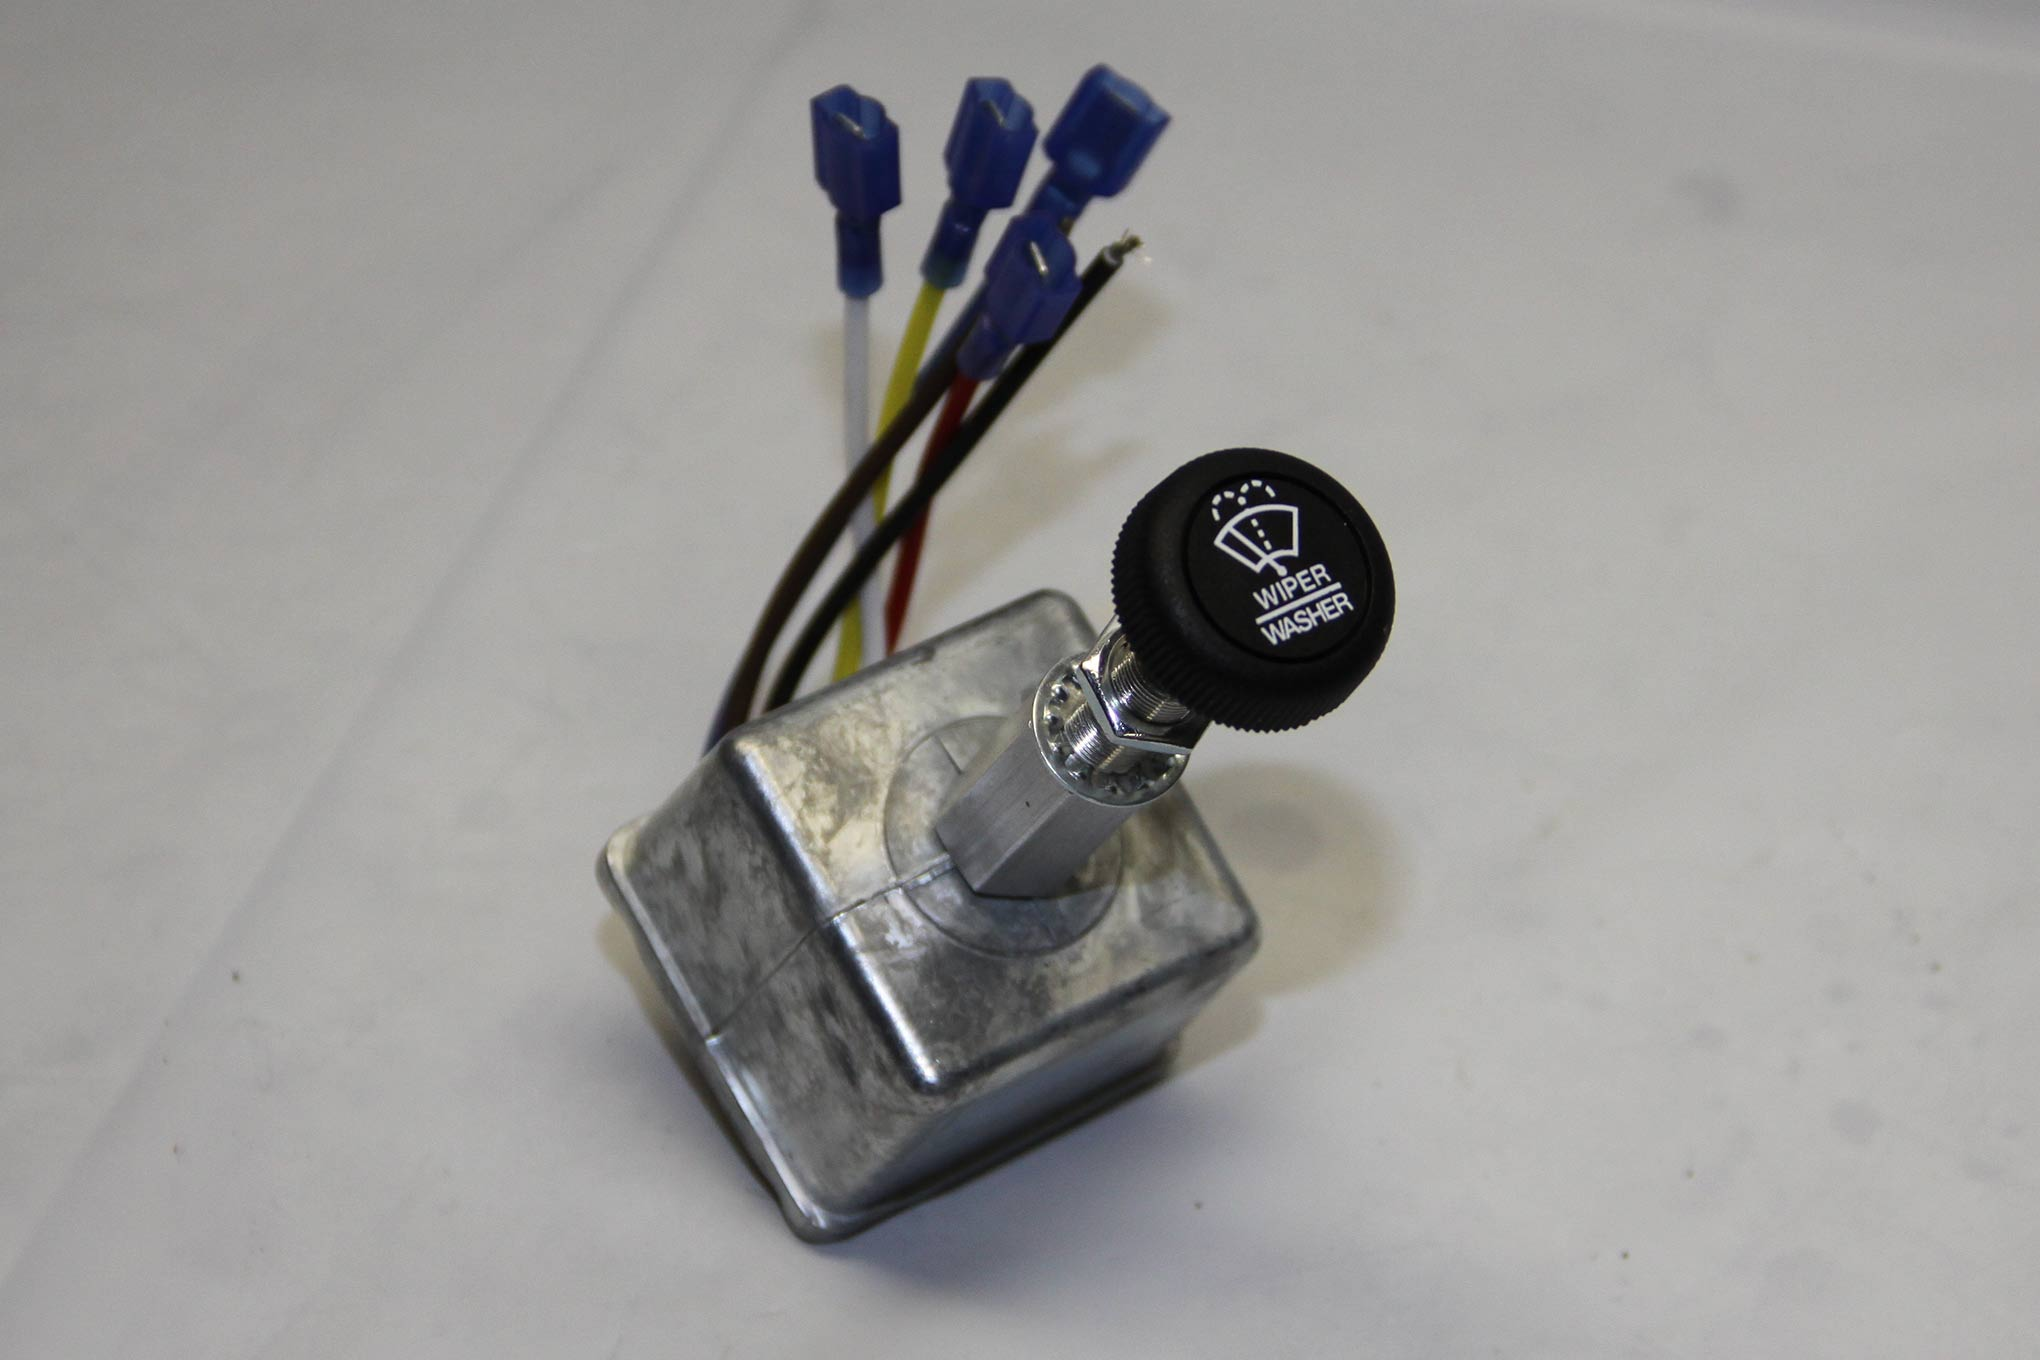 We opted for the intermittent wiper delay switch. It can also operate a windshield washer pump.